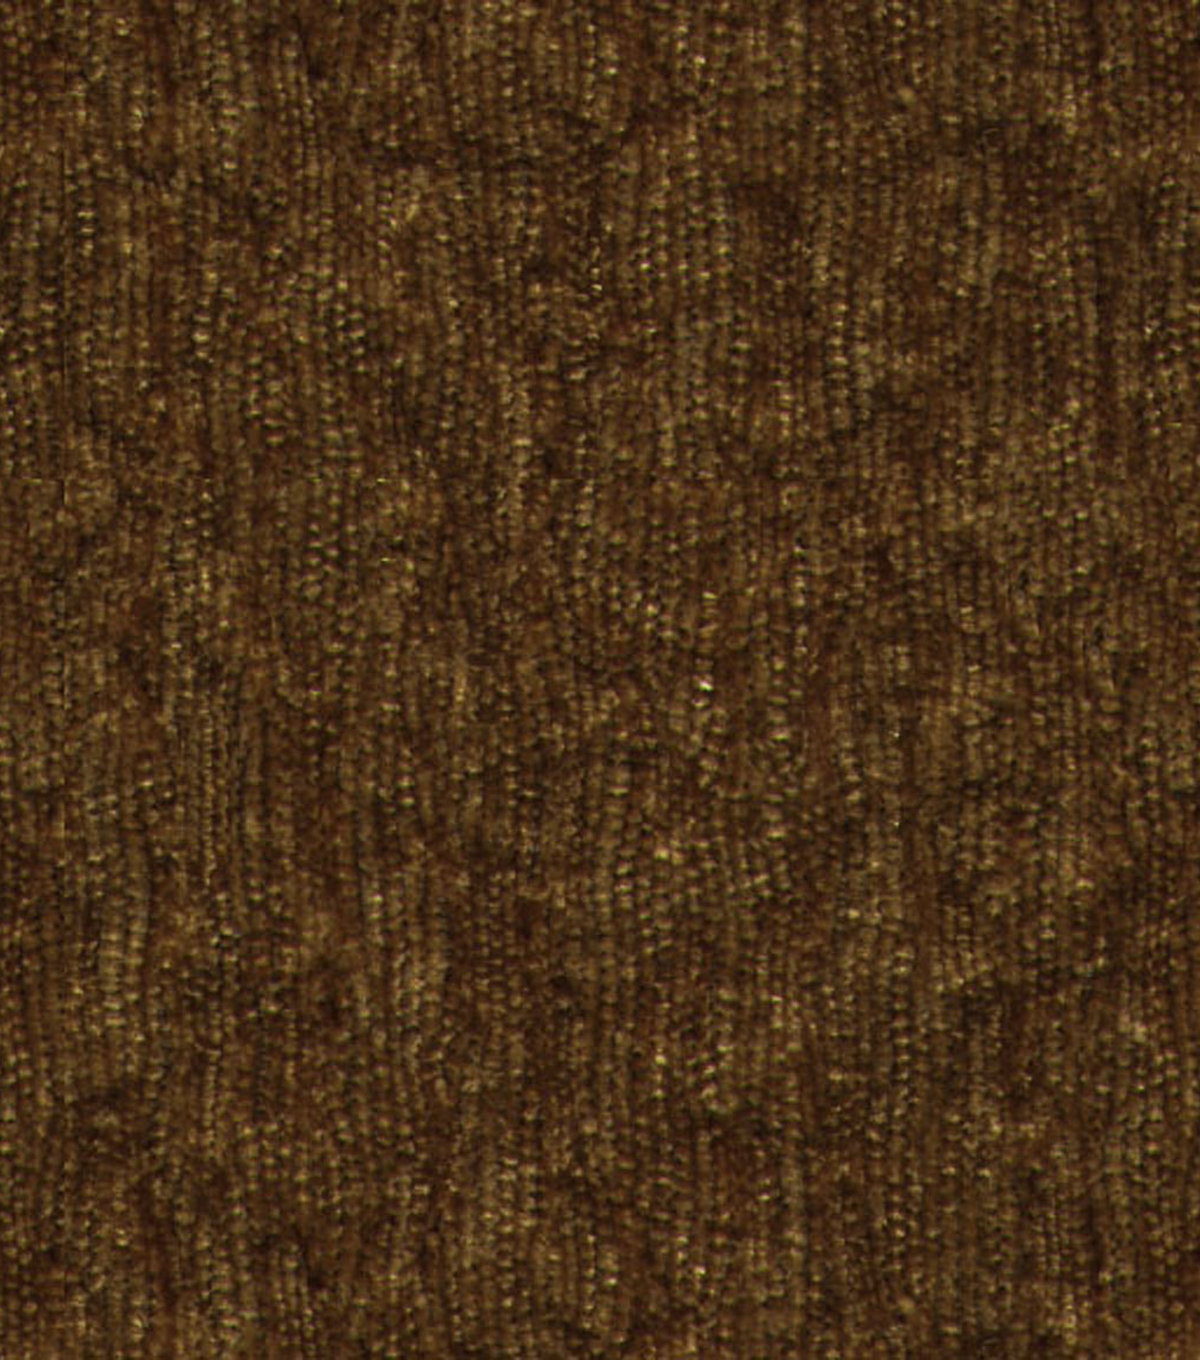 Home Decor 8\u0022x8\u0022 Fabric Swatch-Barrow M7281 5360 Chocolate